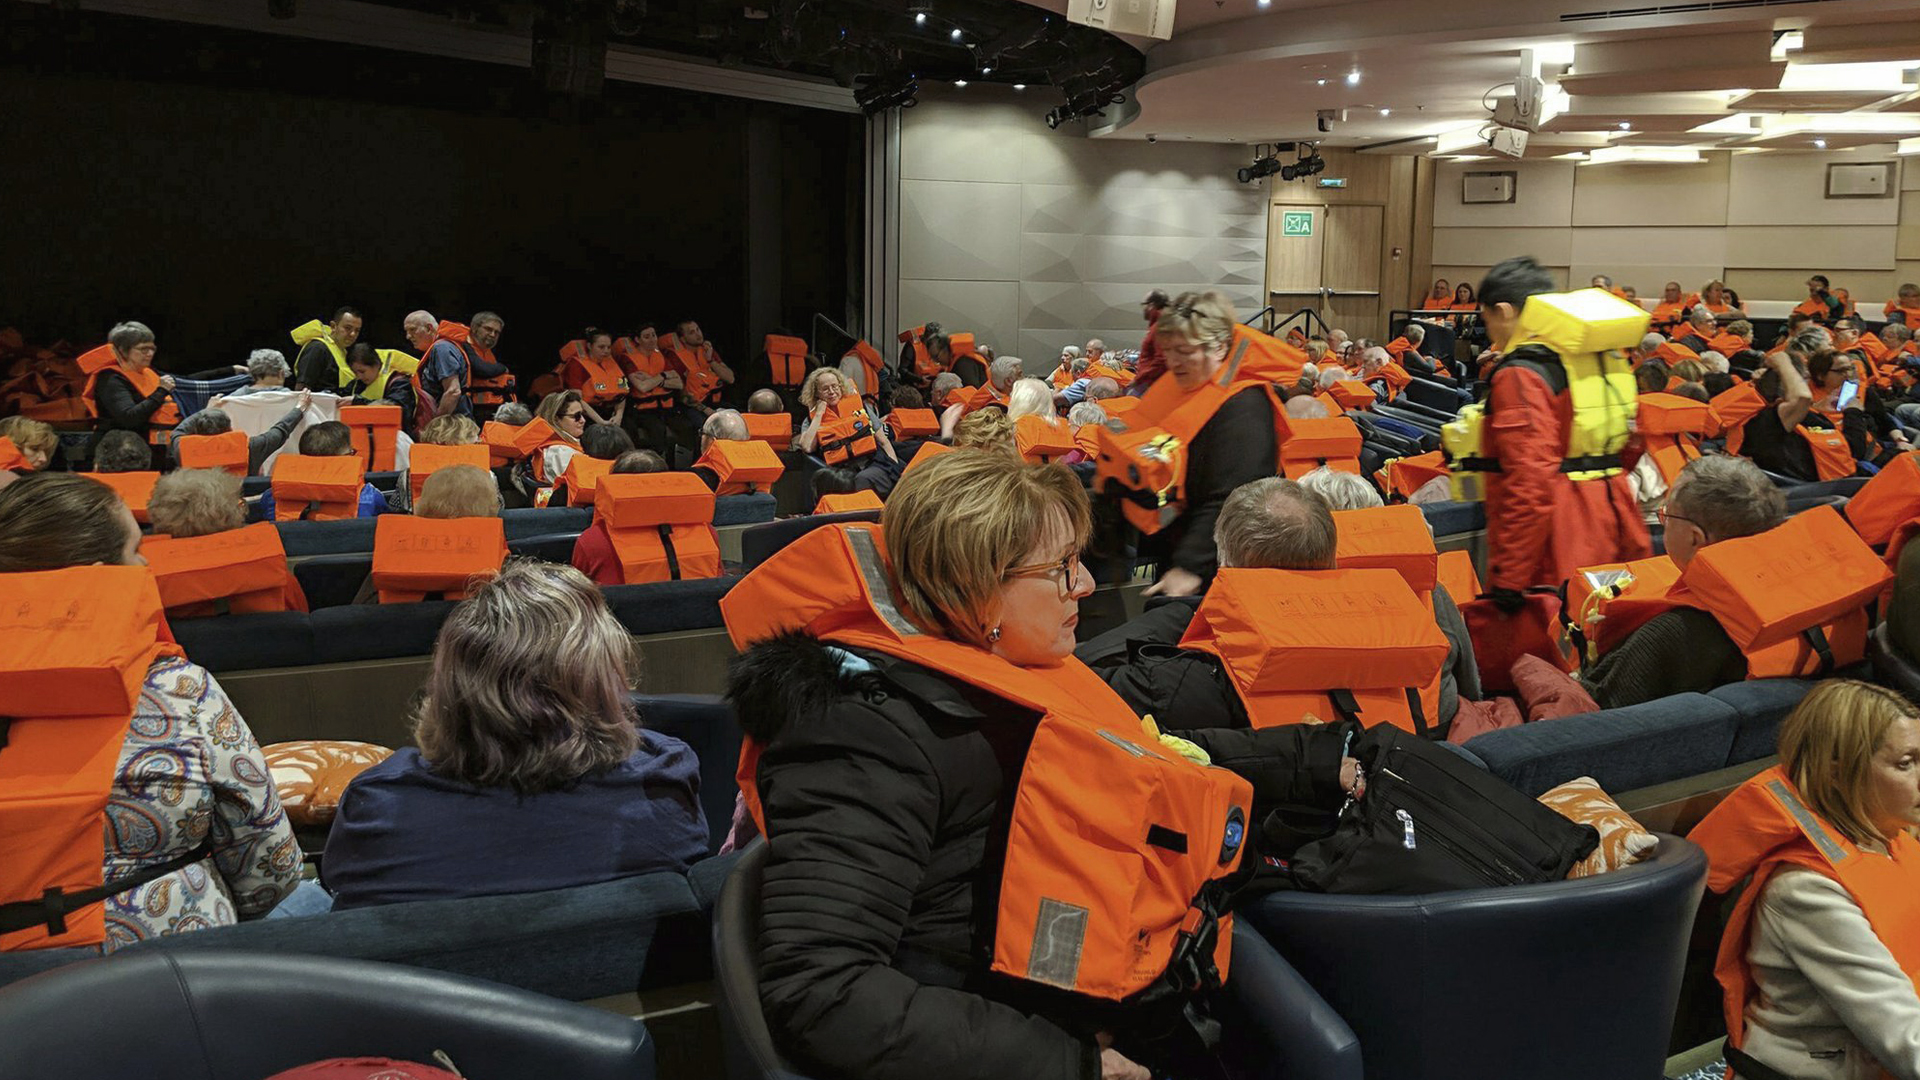 Norway cruise ship after 463 rescued; 17 injured_1553427554177.jpg.jpg